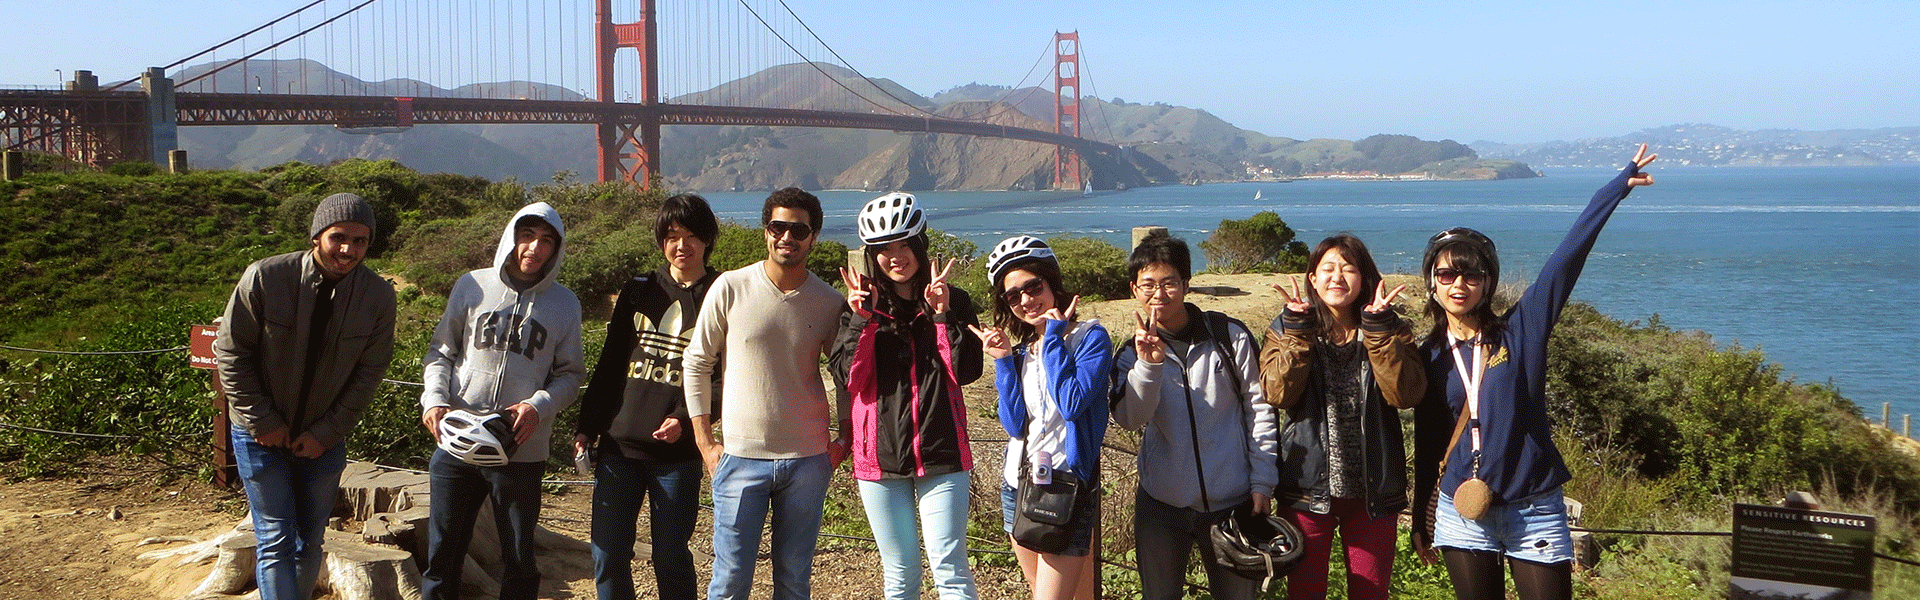 American Language Institute students in front of San Francisco Golden Gate Bridge